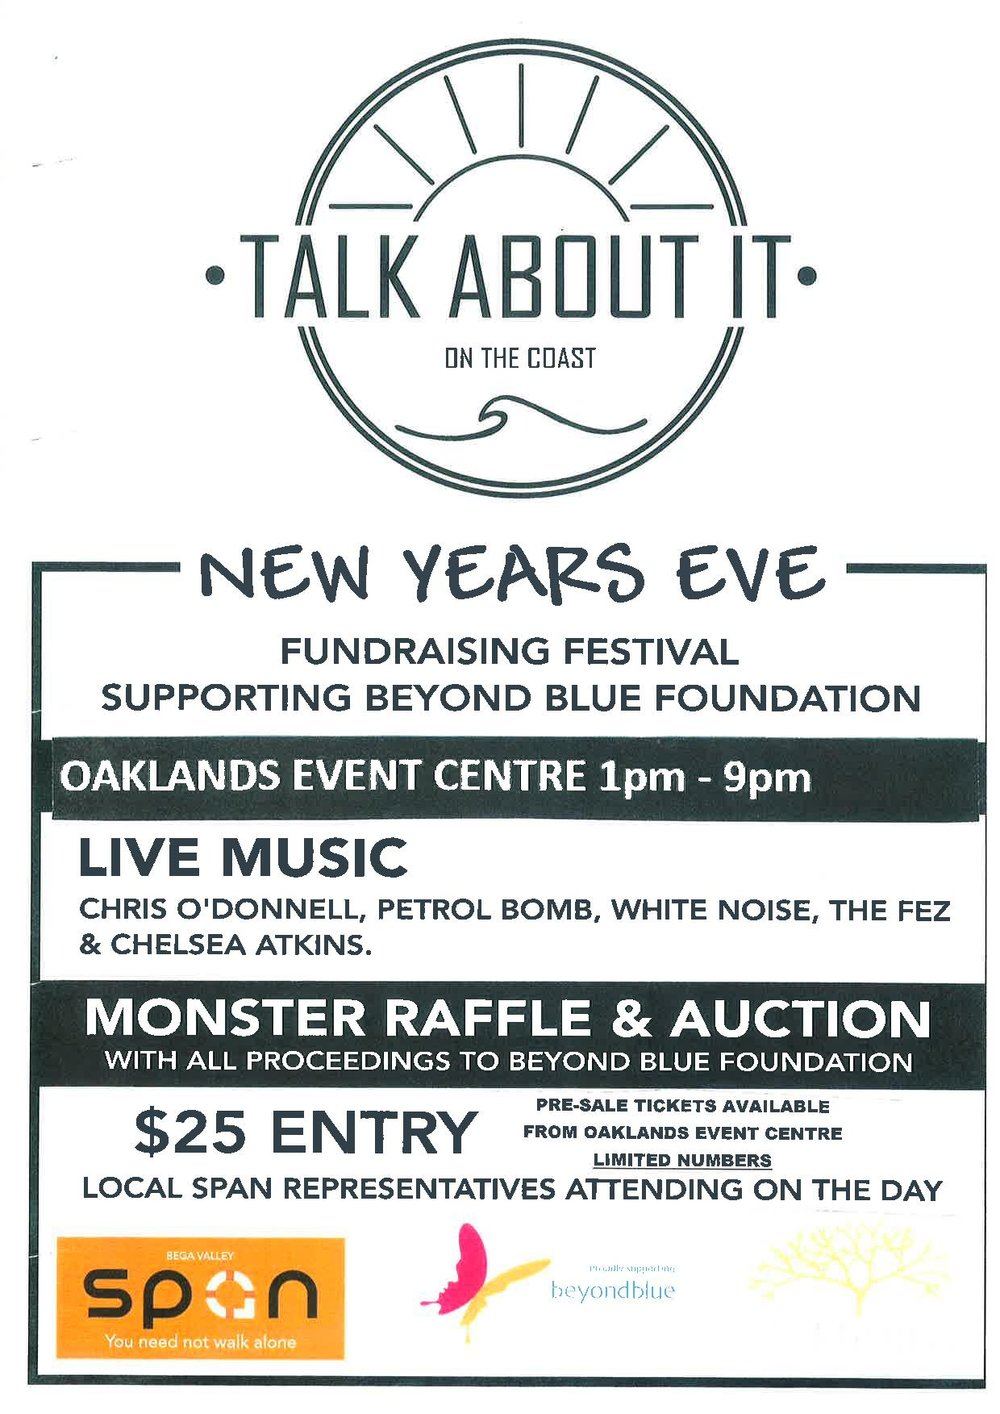 New Years Eve! NEW VENUE !!!  It's back on! Oaklands in Pambula have generously stepped in at the last minute to save your New Year party plans and ensure we all start 2018 right by supporting a worthy cause!   Pre-sale tickets are now available at Oaklands. Be sure to get in quick as there are limited numbers. Those who still have their Royal Willows tickets, hang on to them! They will be valid at the door on the night.   To those wonderful people who bought tickets and have since returned them and now want to buy them again... WE ARE SO SORRY FOR THE RUN AROUND.   We hope you will all join us anyway and celebrate the New Year by supporting those in our community that need it most.  Let's TALK ABOUT IT!   Time: 1pm - 9pm Live music: Chris O'Donnell, Chelsea Atkins, petrol bomb, the fez, white noise plus more Bbq throughout afternoon $25 entry fee, due to limited numbers this event will be 18+ Ticket numbers are limited!!! 🎶🎶🎶🎶🎶🎶🎶🎶🎶🎶🎶🎶🎶🎶🎶    For anyone unable to make this event and would like to donate, Please show your love by donating through the link below:    http://mail-track.everydayhero.com/track/click/30190481/beyond-blue-in-memoriam.everydayhero.com?p=eyJzIjoiV1FSaVJaLVlZLURJWHdERUhObHRRMlVwcDFBIiwidiI6MSwicCI6IntcInVcIjozMDE5MDQ4MSxcInZcIjoxLFwidXJsXCI6XCJodHRwczpcXFwvXFxcL2JleW9uZC1ibHVlLWluLW1lbW9yaWFtLmV2ZXJ5ZGF5aGVyby5jb21cXFwvYXVcXFwvdGFsay1hYm91dC1pdC1vbi10aGUtY29hc3QtaW4tbG92aW5nLW1lbW9yeS1vZi1iZWF2ZXJcIixcImlkXCI6XCI5YmNkZDM5YzNlYWY0OWQ0ODJkMGQ2NmU5OTBjZTBhNFwiLFwidXJsX2lkc1wiOltcImRjNjM5ZDcxODc5MzkwNmNjZTQ1ODgyMzNjNGJkODJlMDYzNmM0NjRcIl19In0      A huge thank you (and a belated happy new year) to everyone who came out to support the Beyond Blue fundraiser on New Years Eve @ Oaklands Event Centre. Was a MASSIVE success with over 17k raised for such a relevant and worthy cause. WELL DONE! None of course would have been possible without Alysha & Christjan. They were an absolute pleasure to work with. Their efforts & the team of volunteers made the event such a succes that there will be another in the very near future.  We also need to post the raffle winners from the day and they are as follows:  Raffle Drawn  1st PRIZE WINNER Riley Cummings  Ticket Number: #44  2nd PRIZE WINNER Sally Bailey Ticket Number: #454  3rd PRIZE WINNER Adam Nelson Ticket Number: #191  4th PRIZE WINNER Adam Nelson Ticket Number: #183  5th PRIZE WINNER Rob Martyn Ticket Number: #426  6th PRIZE WINNER Scott Major Ticket Number: #895  7th PRIZE WINNER Kirsty Pongratz Ticket Number: #417  8th PRIZE WINNER sandi Smith  Ticket Number: #618  9th PRIZE WINNER Jacob Gersets Ticket Number: #700  10th PRIZE WINNER baden sinclair Ticket Number: #514  Thanks again, and we hope to see you all very soon. The Event Centre Team.